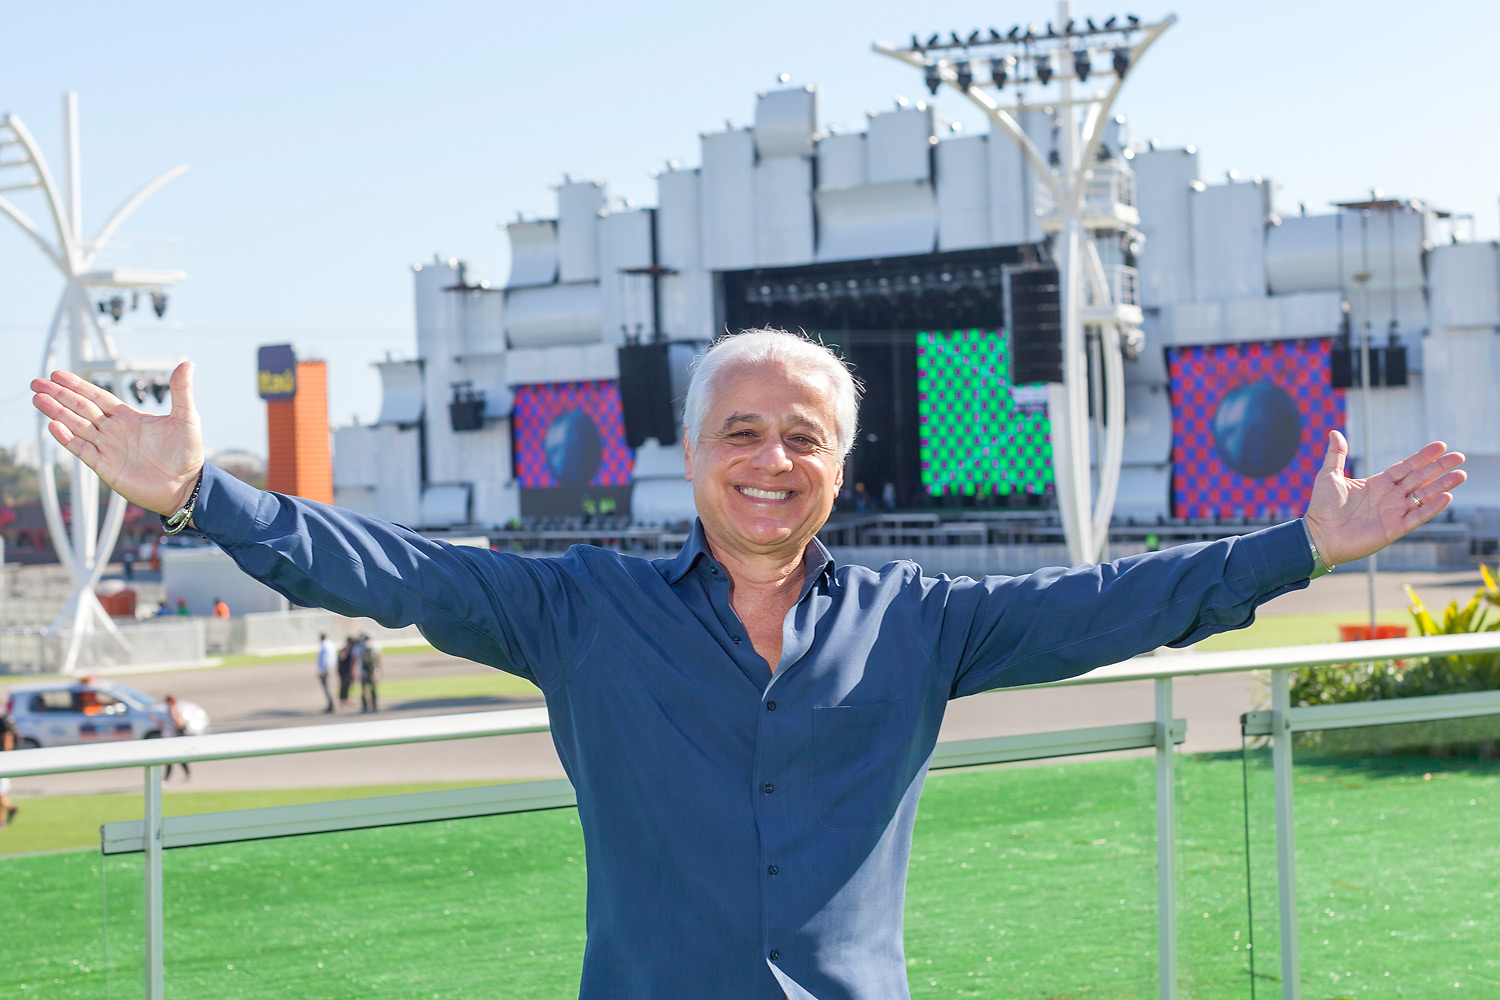 Roberto Medina - Fundador do Rock in Rio